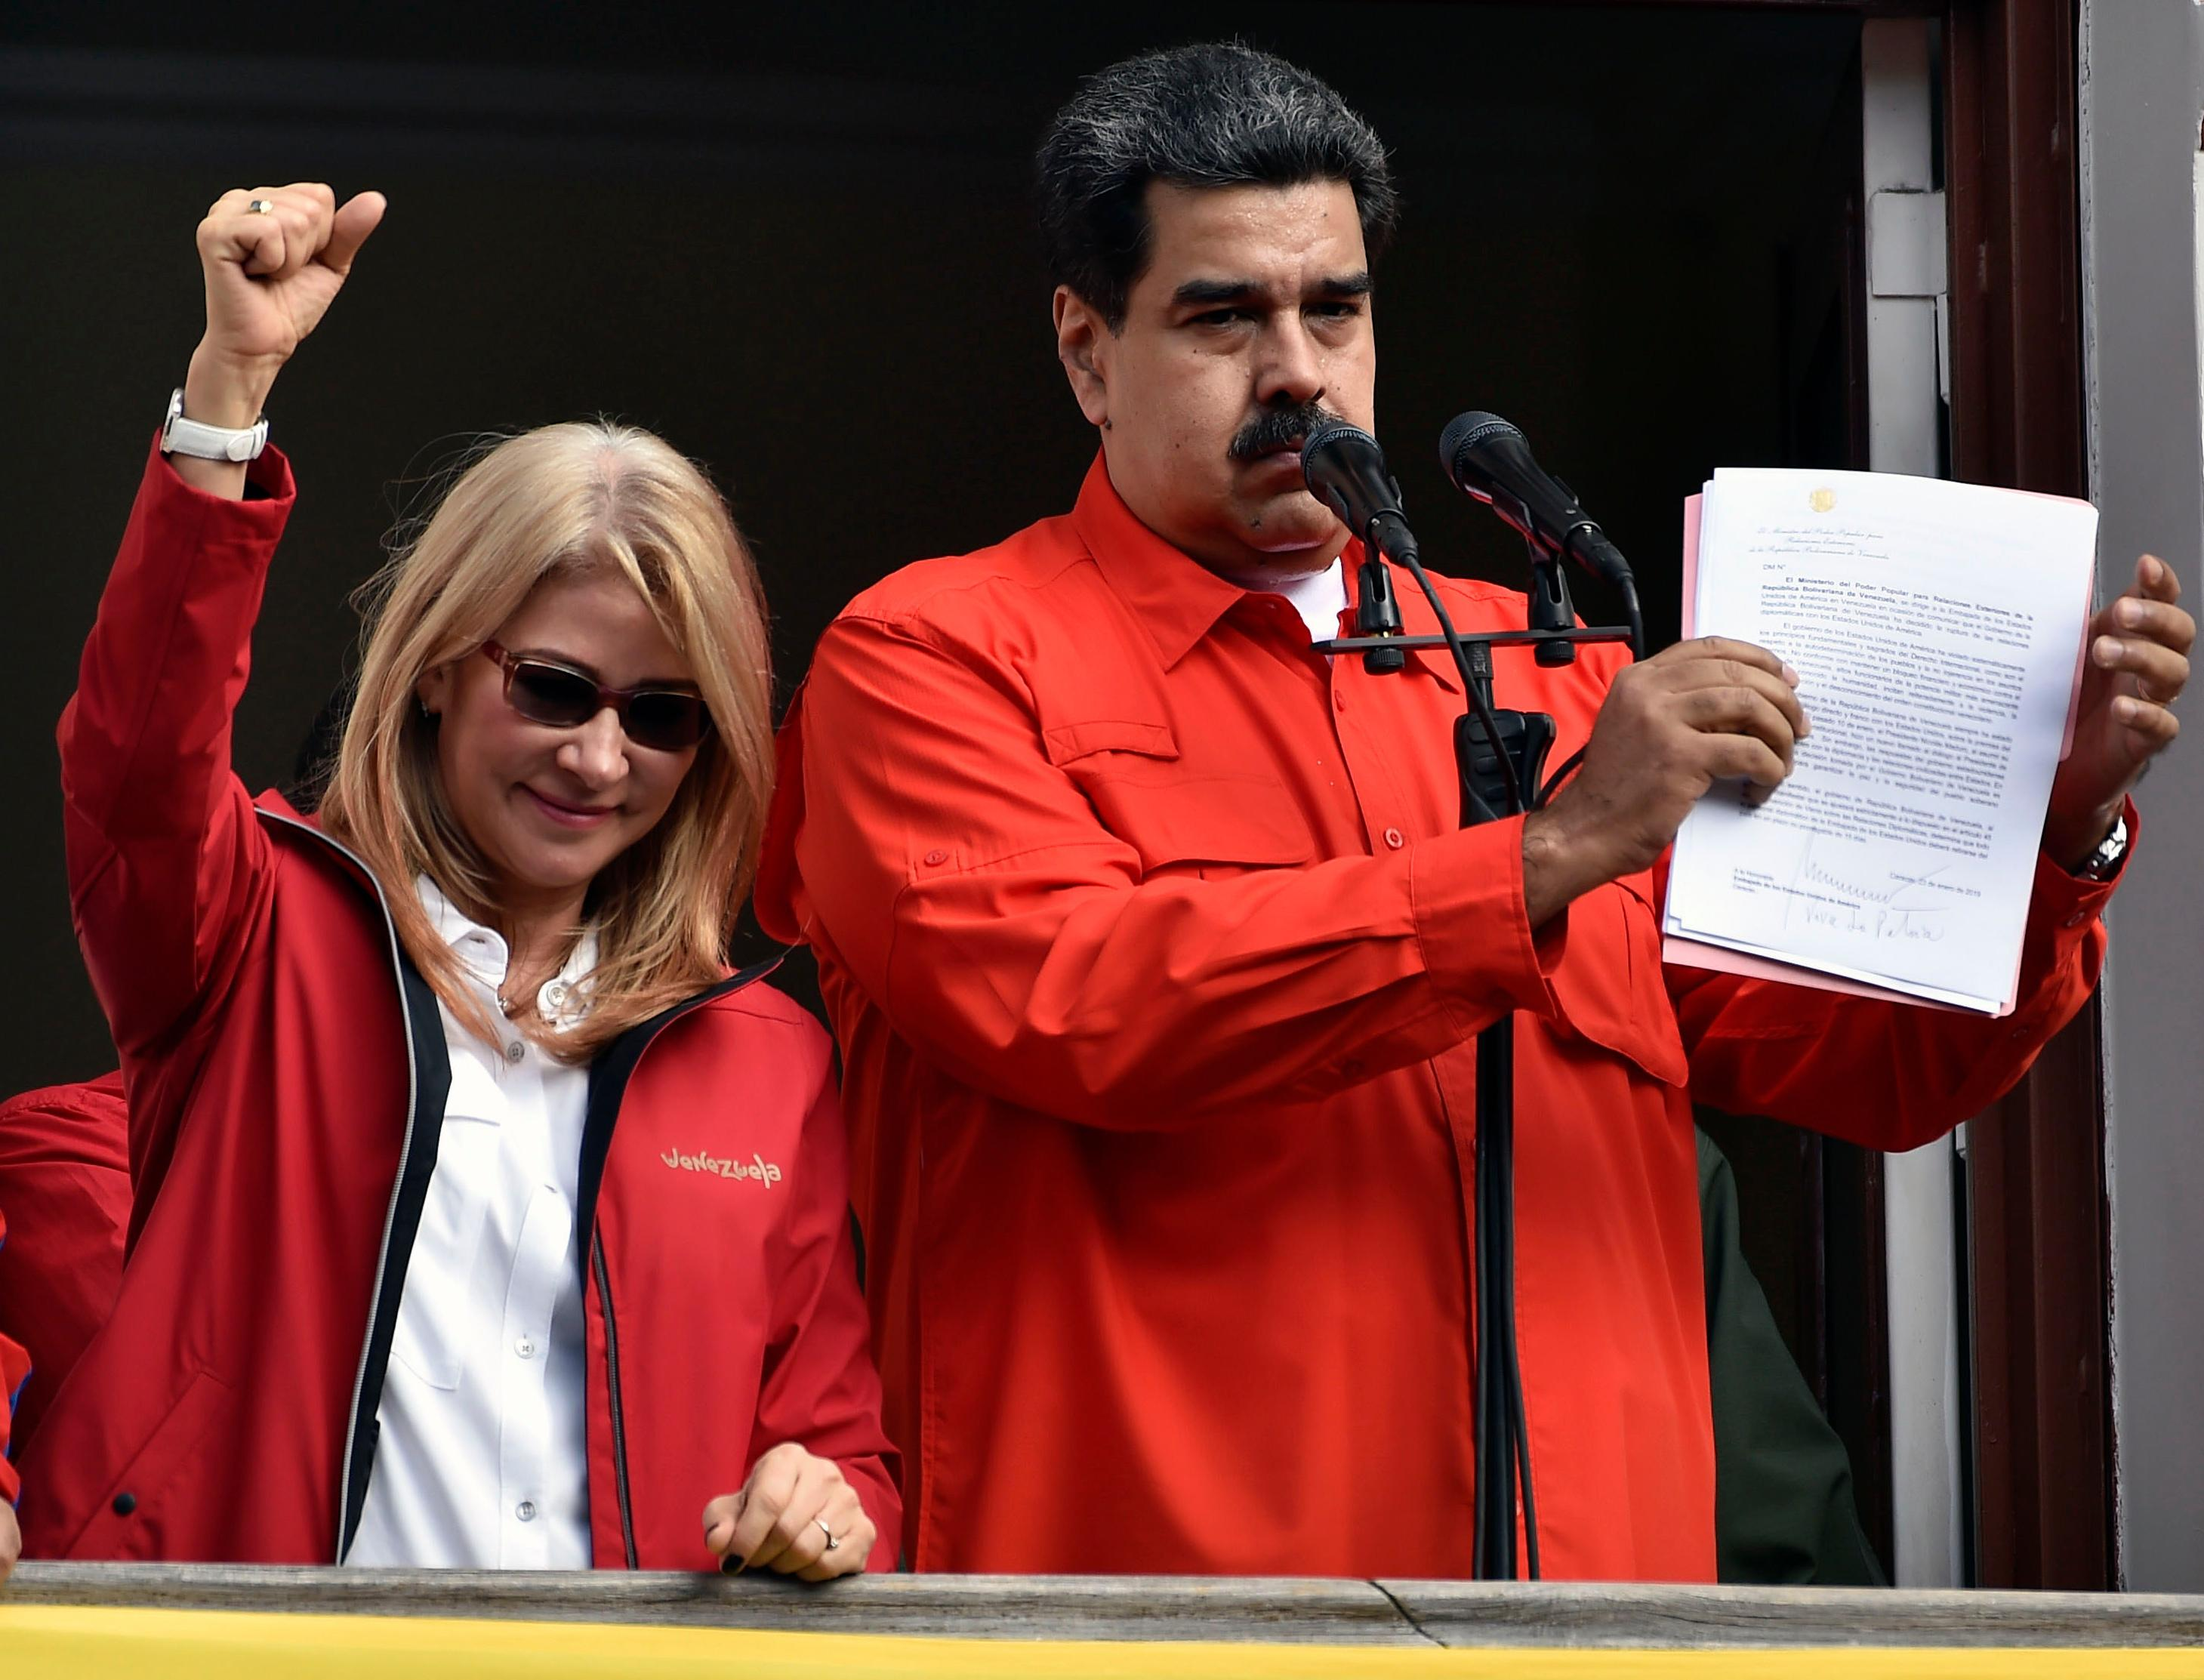 Trump says 'All options on table' as Venezuela crisis deepens